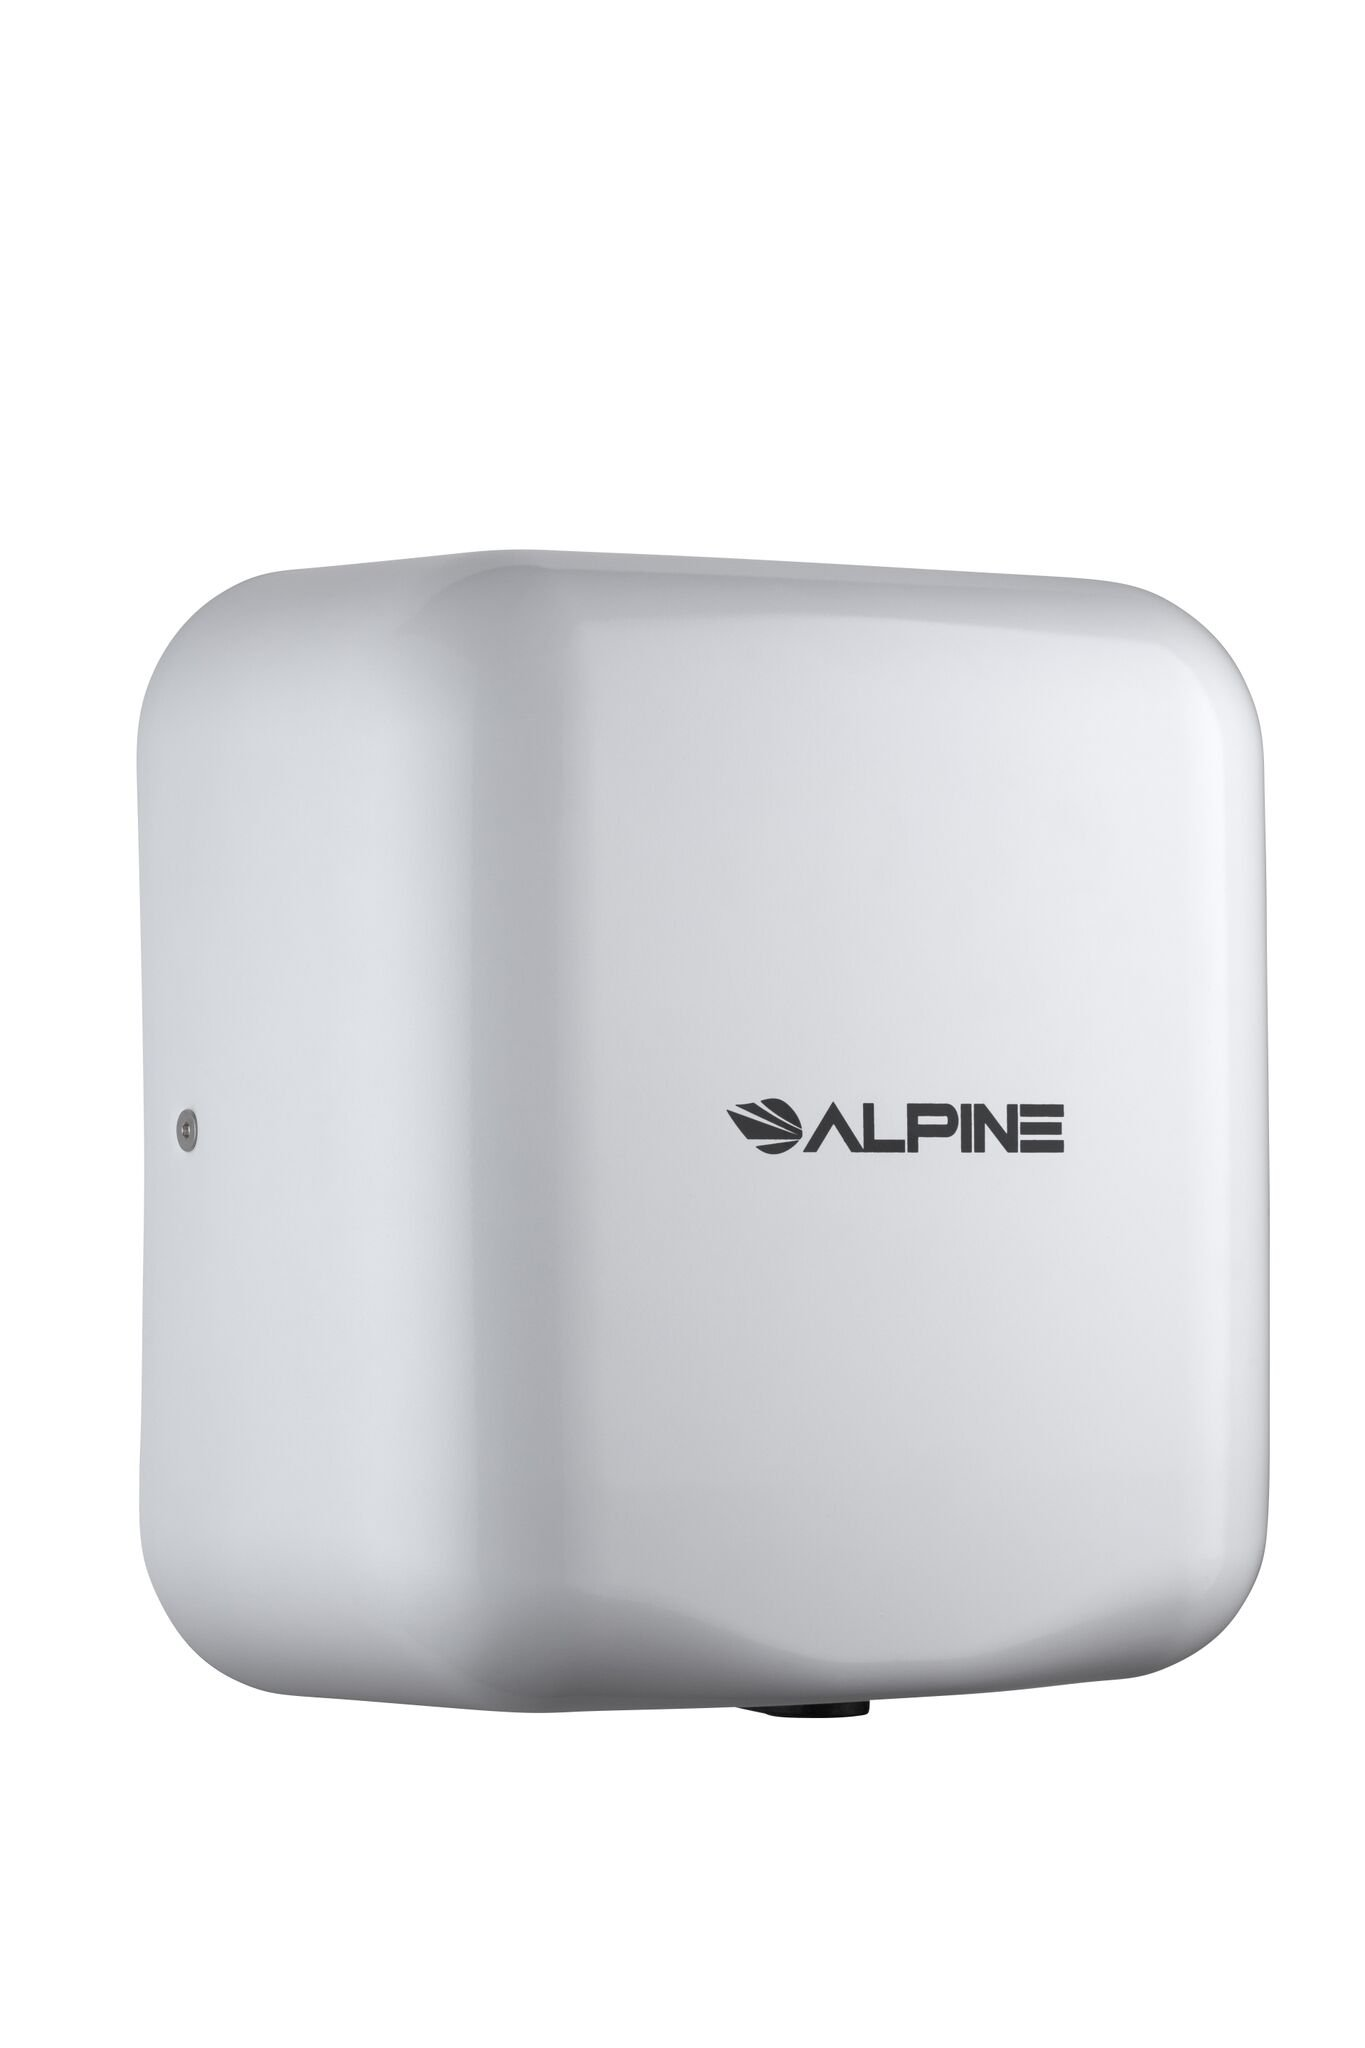 Alpine Hemlock Automatic Hand Dryer - Heavy Duty Stainless Steel - Commercial High Speed Hot Air Hand Blower | 1800Watts | 110-120Volts | Quick & Easy Installation